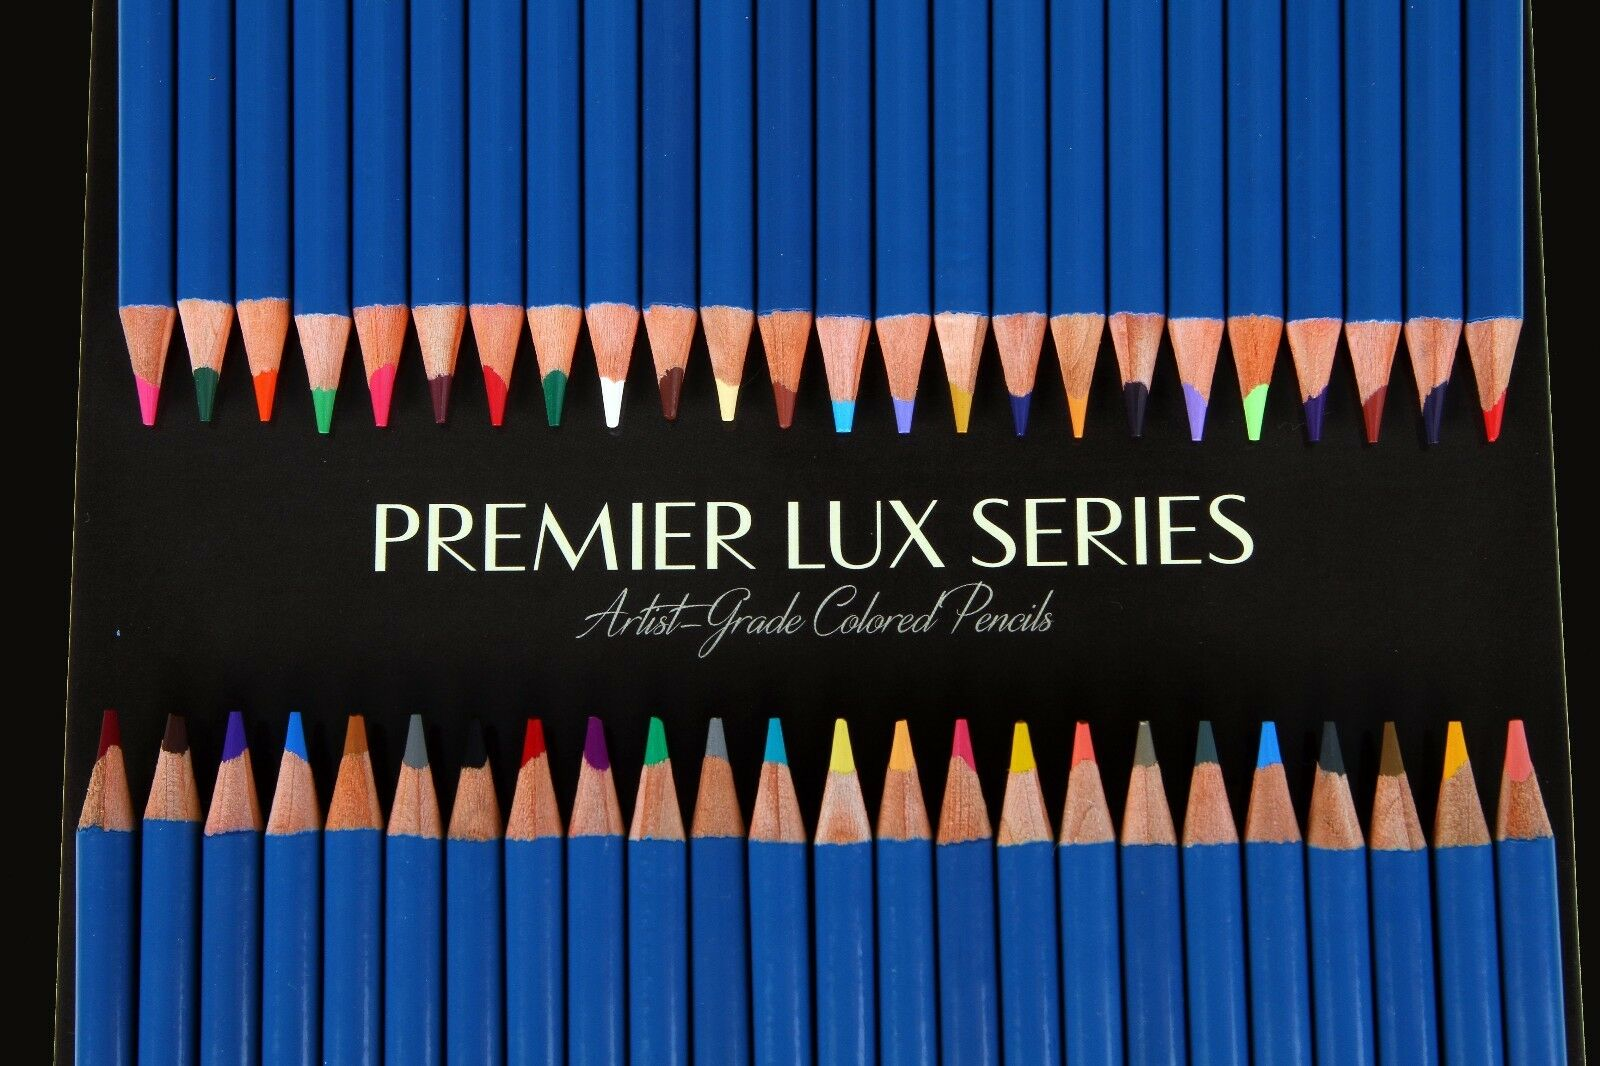 Bayland Premier Lux Series Colored Pencils  for Adults/Artis